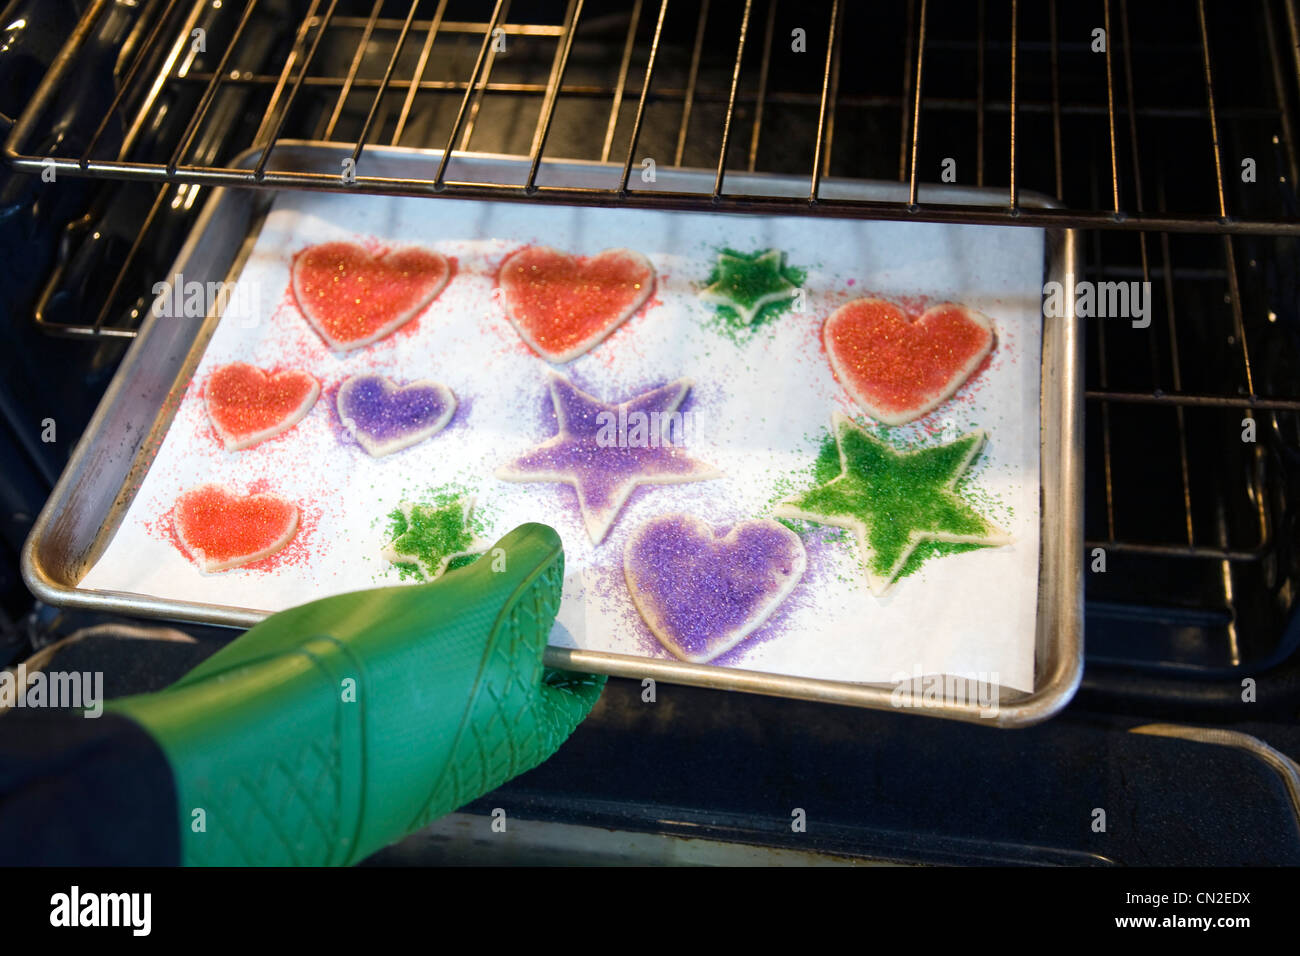 Pan of Sugar Cookies Being Placed in Oven Stock Photo